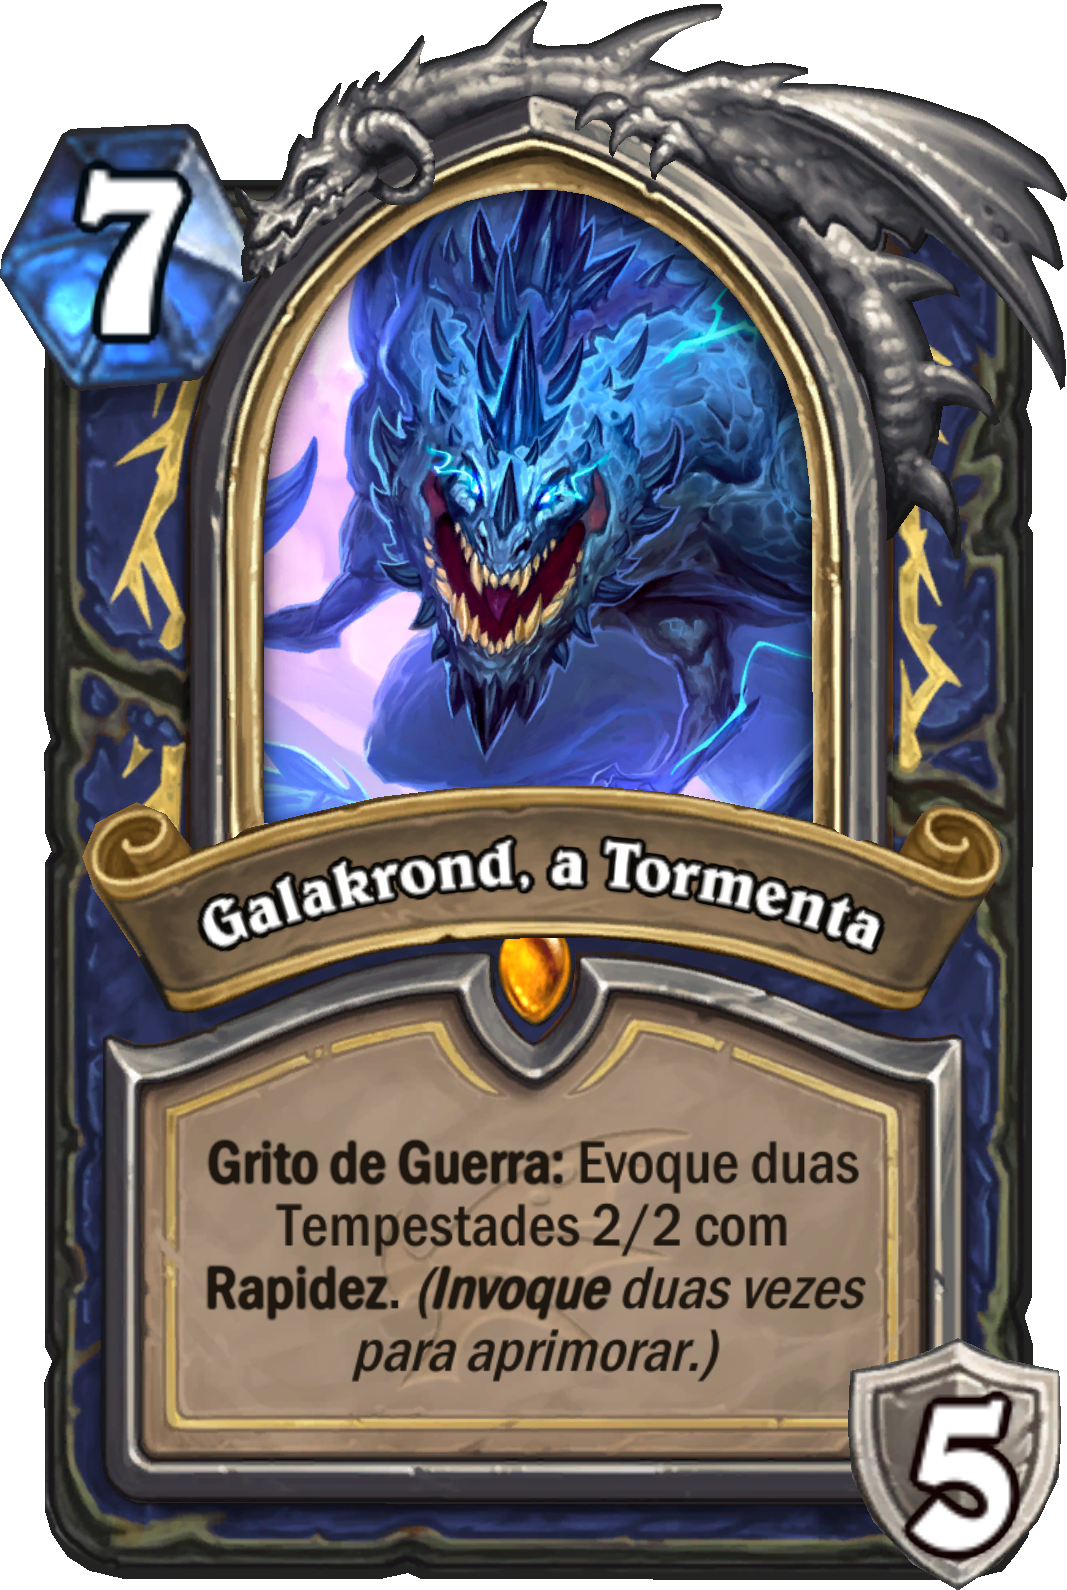 Galakrond, a Tormenta